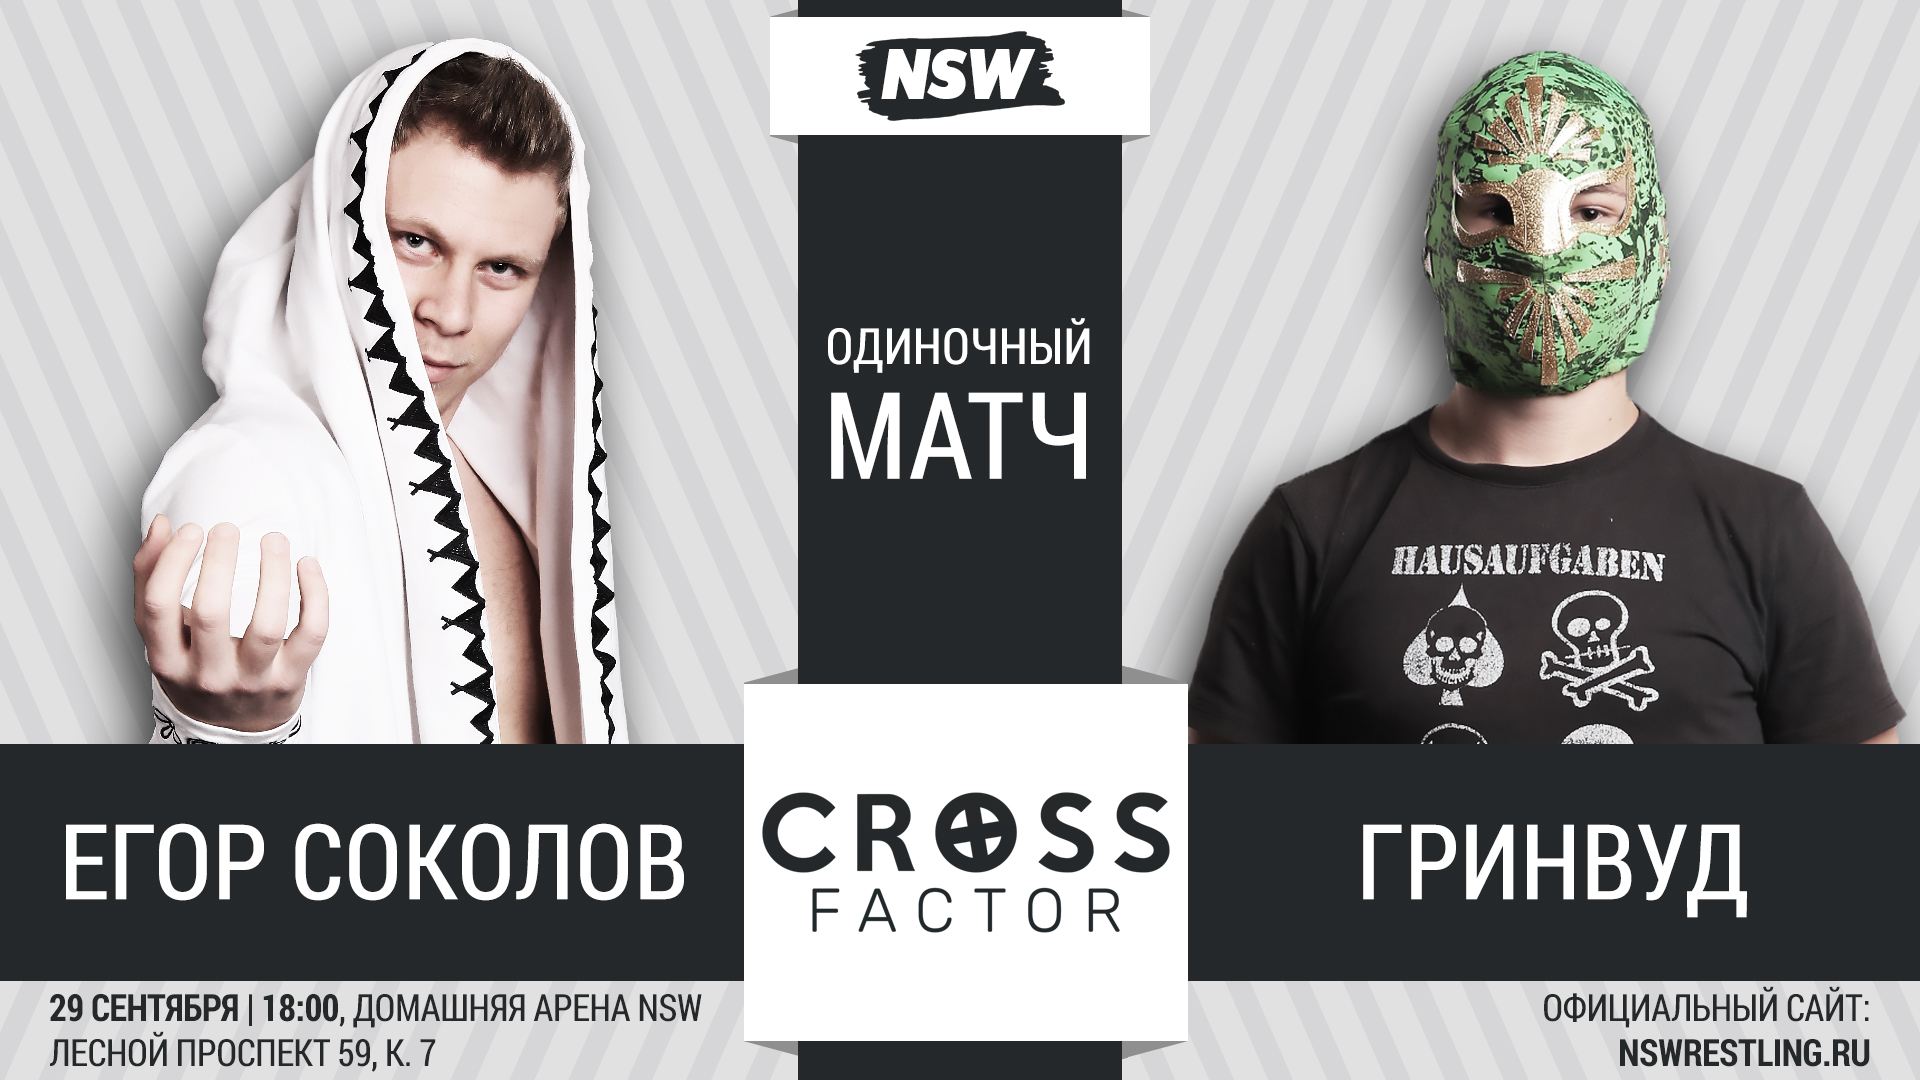 NSW Cross Factor (29/09): Егор Соколов против Гринвуда